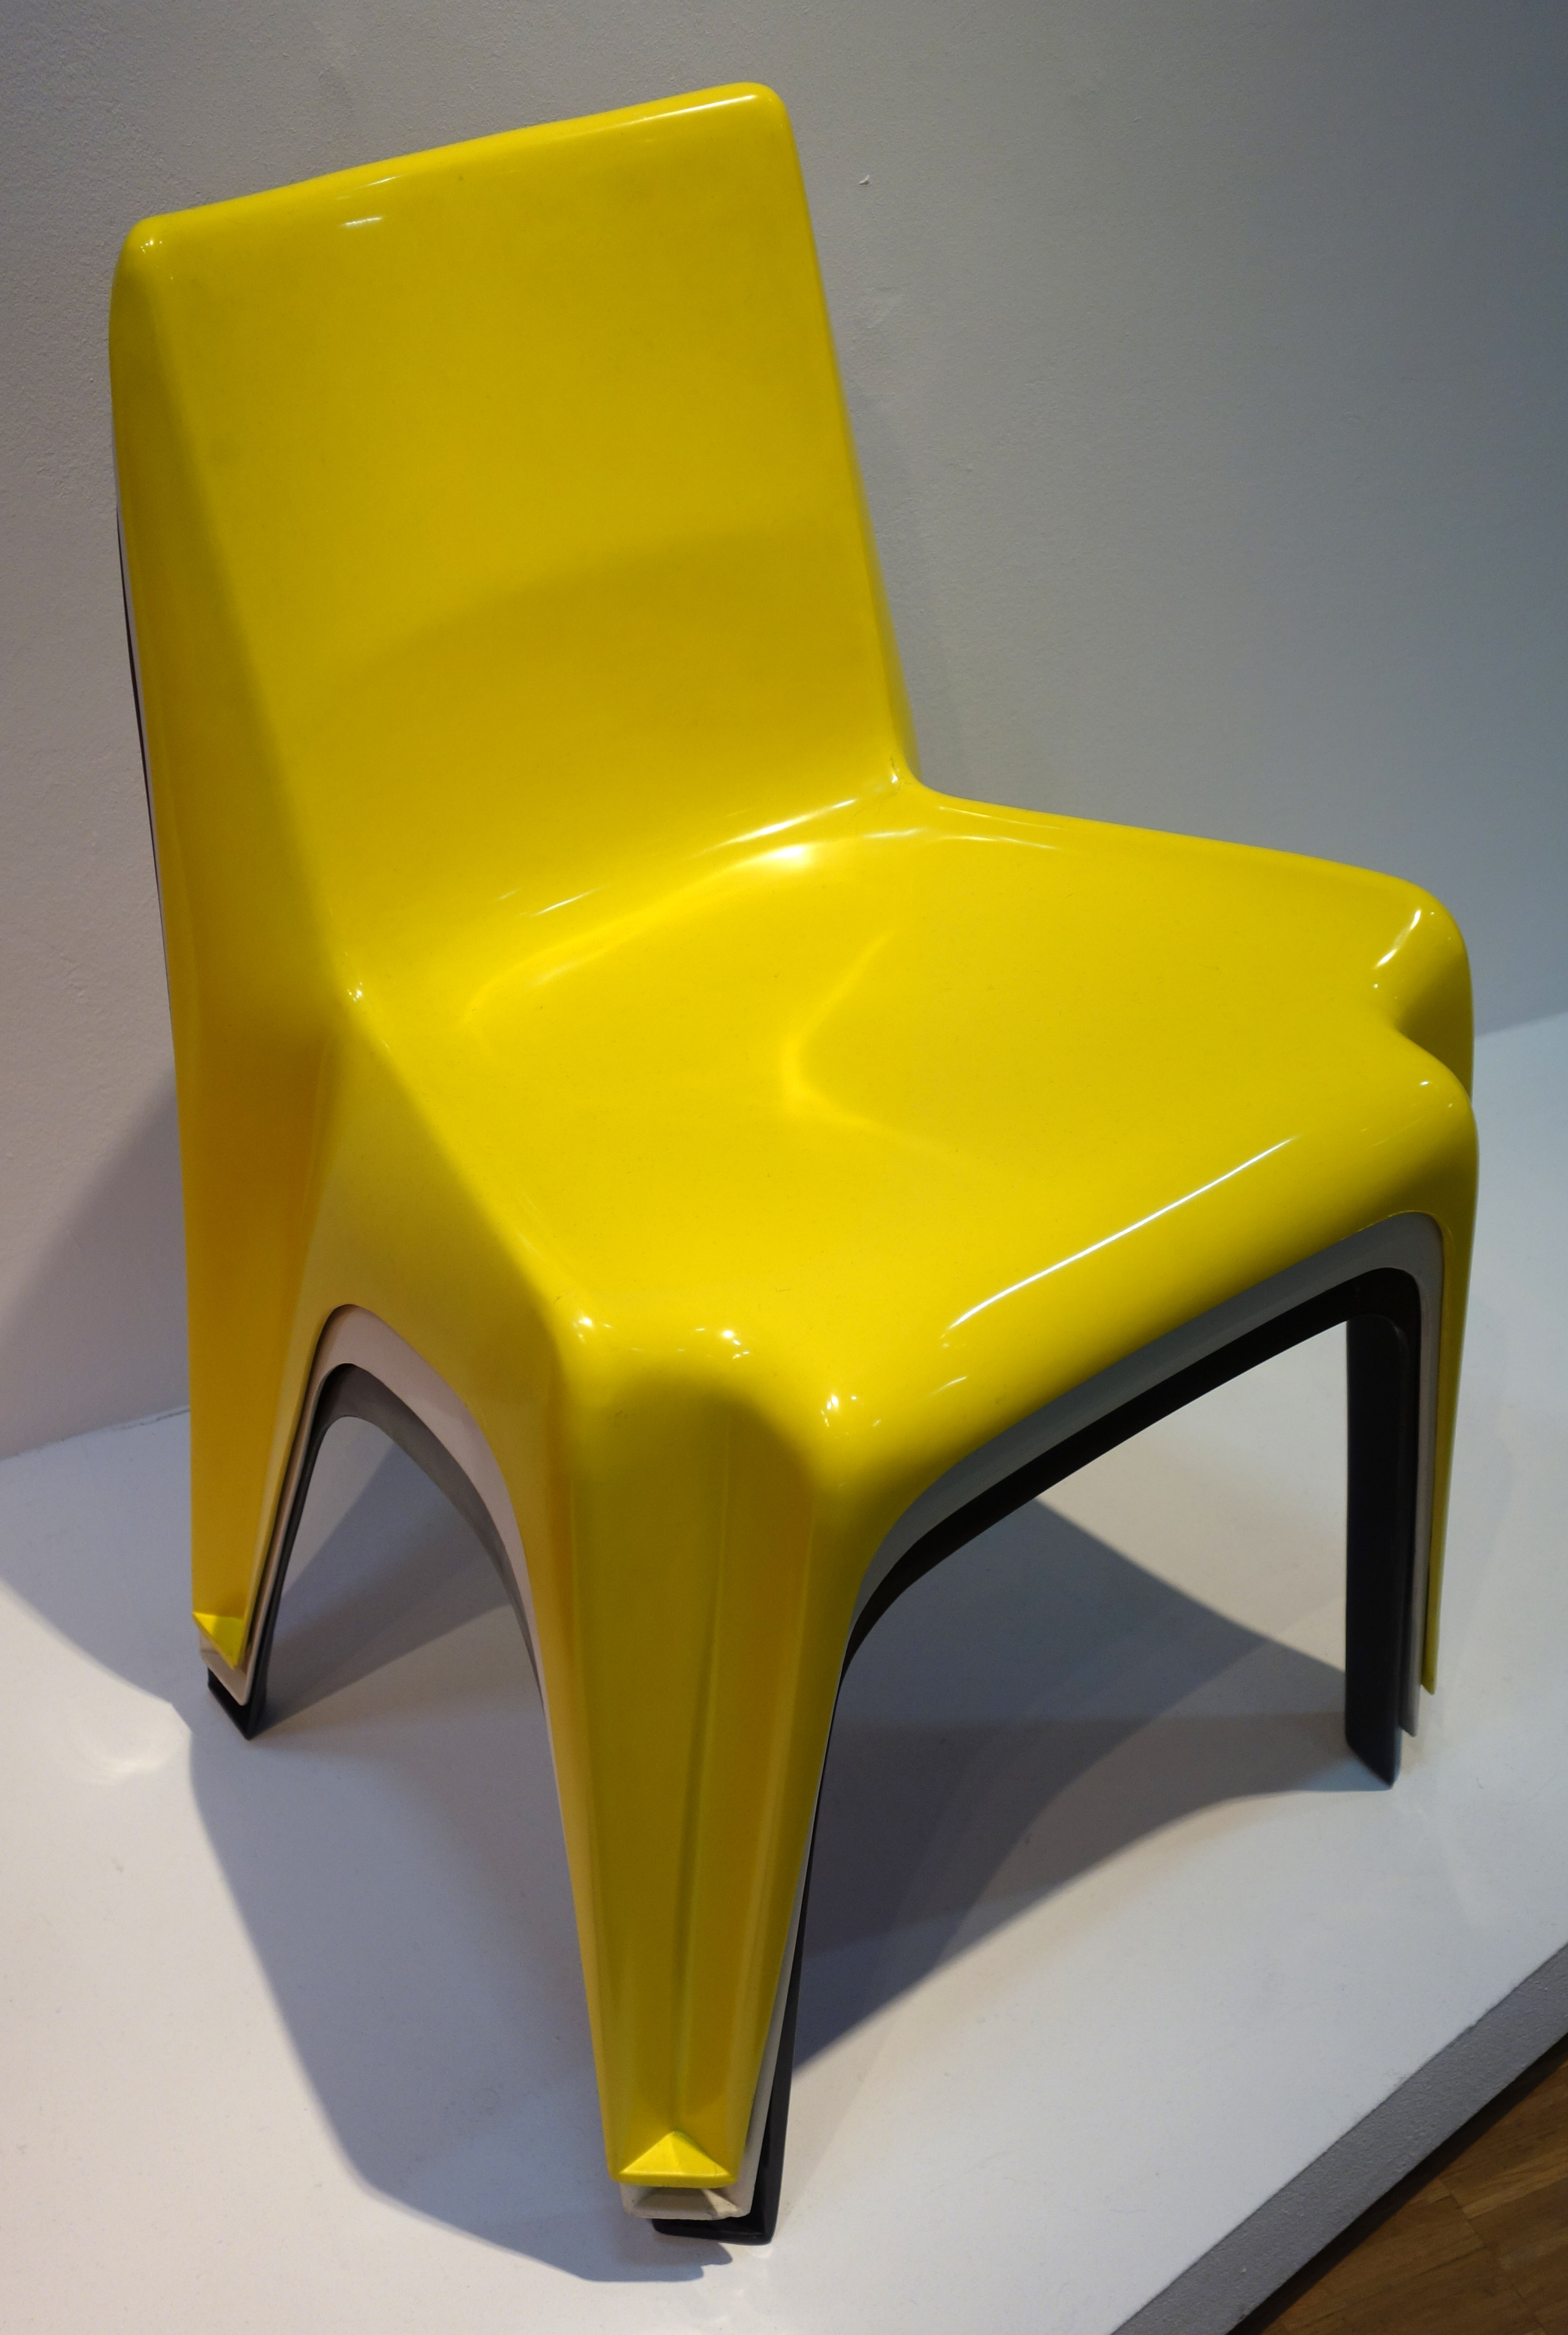 Bofinger by Helmut Bätzner 1964  classic miniature REC014 1//12 scale Chair